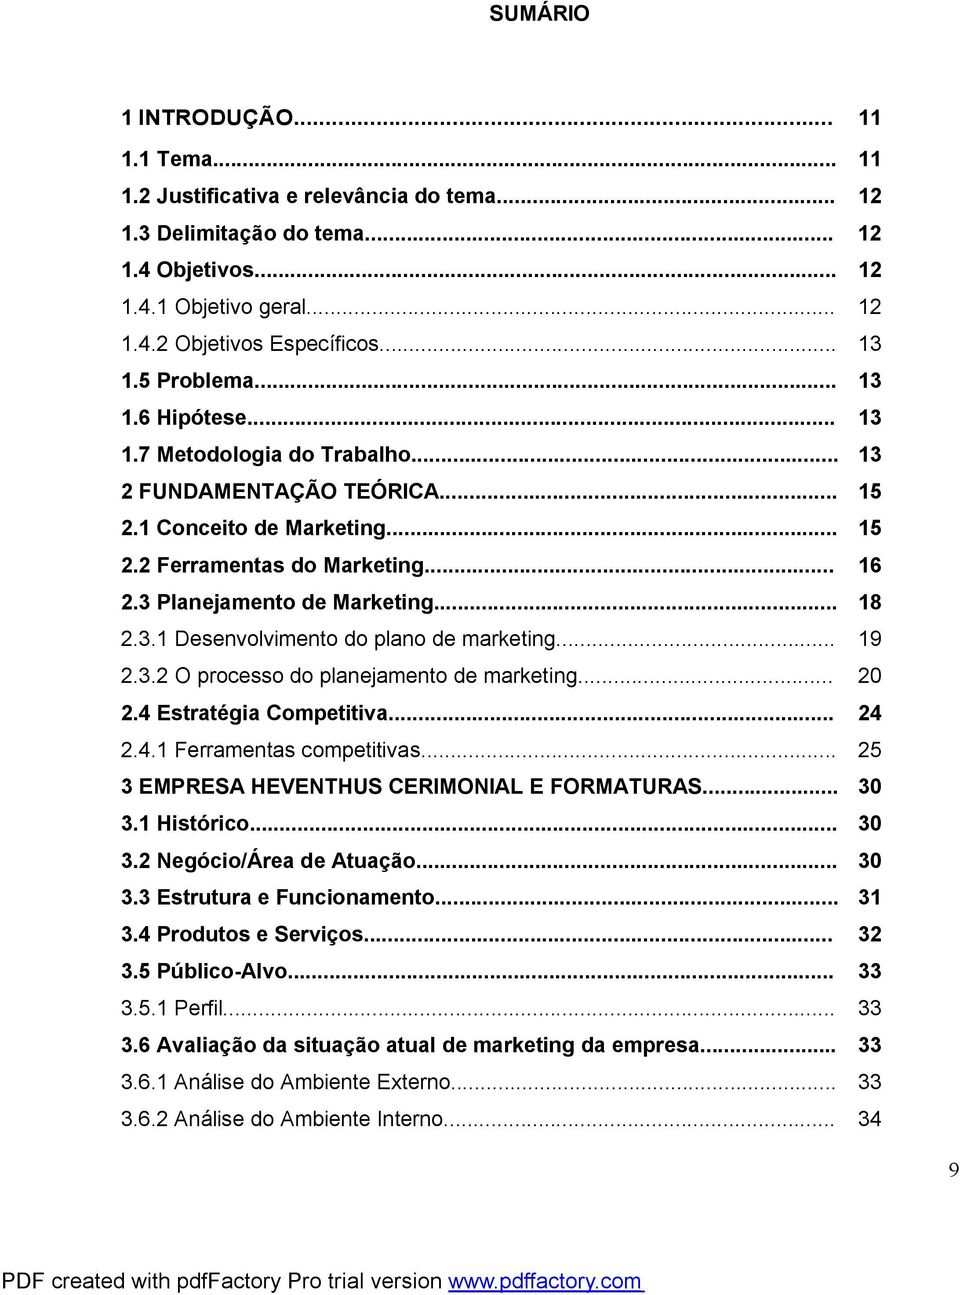 .. 18 2.3.1 Desenvolvimento do plano de marketing... 19 2.3.2 O processo do planejamento de marketing... 20 2.4 Estratégia Competitiva... 24 2.4.1 Ferramentas competitivas.